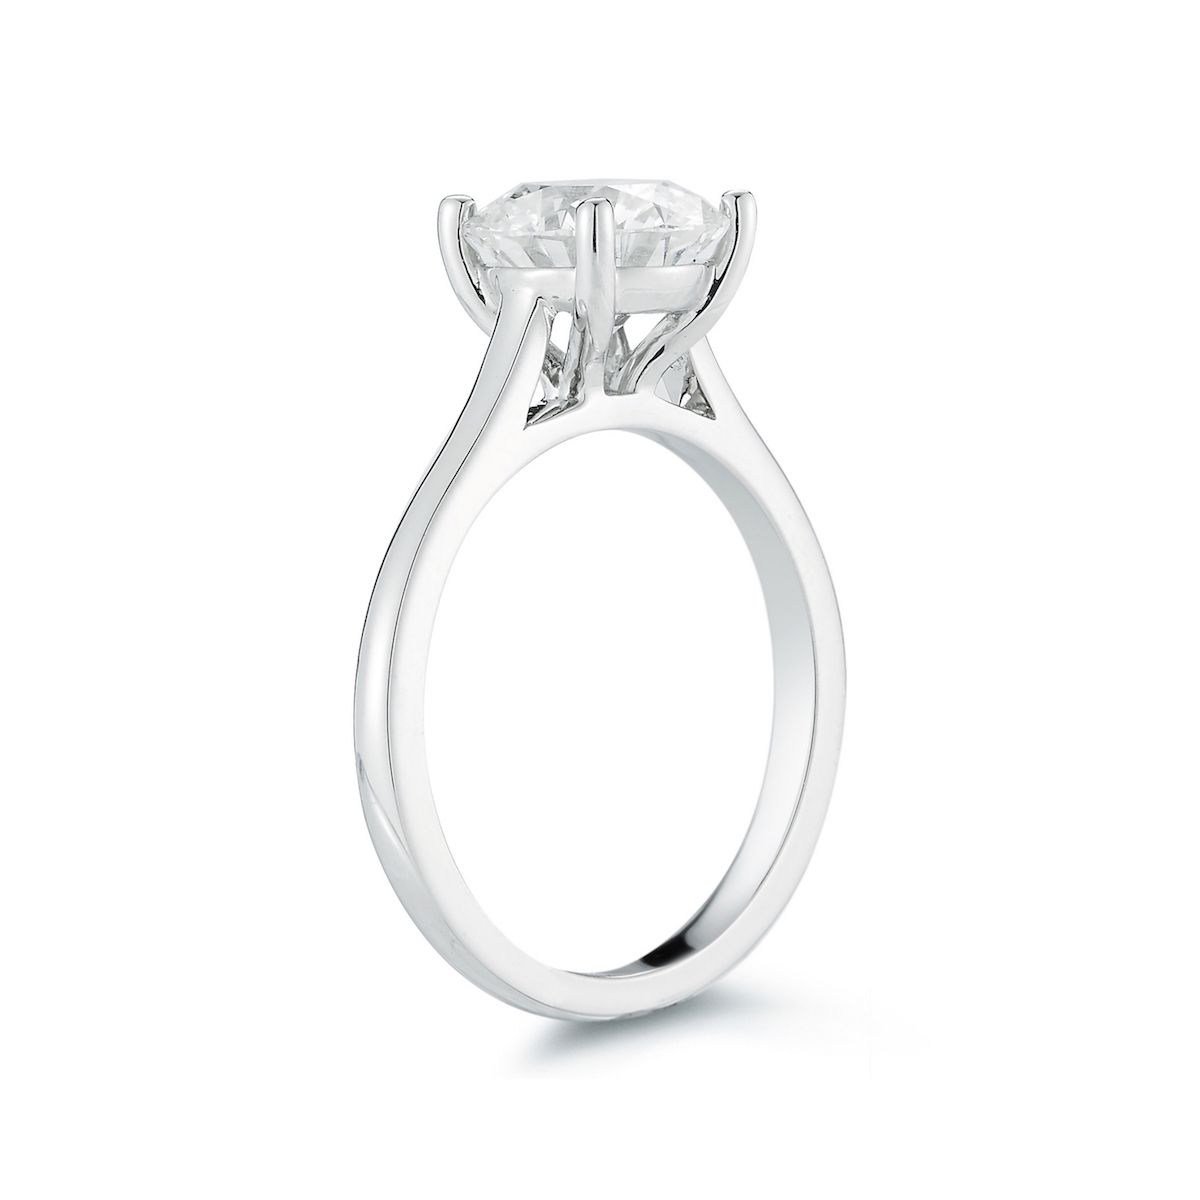 Marshall Pierce Company Chicago Cathedral Diamond Solitaire Engagement Ring 3 Wedding Rings Solitaire Diamond Solitaire Engagement Ring Custom Engagement Ring